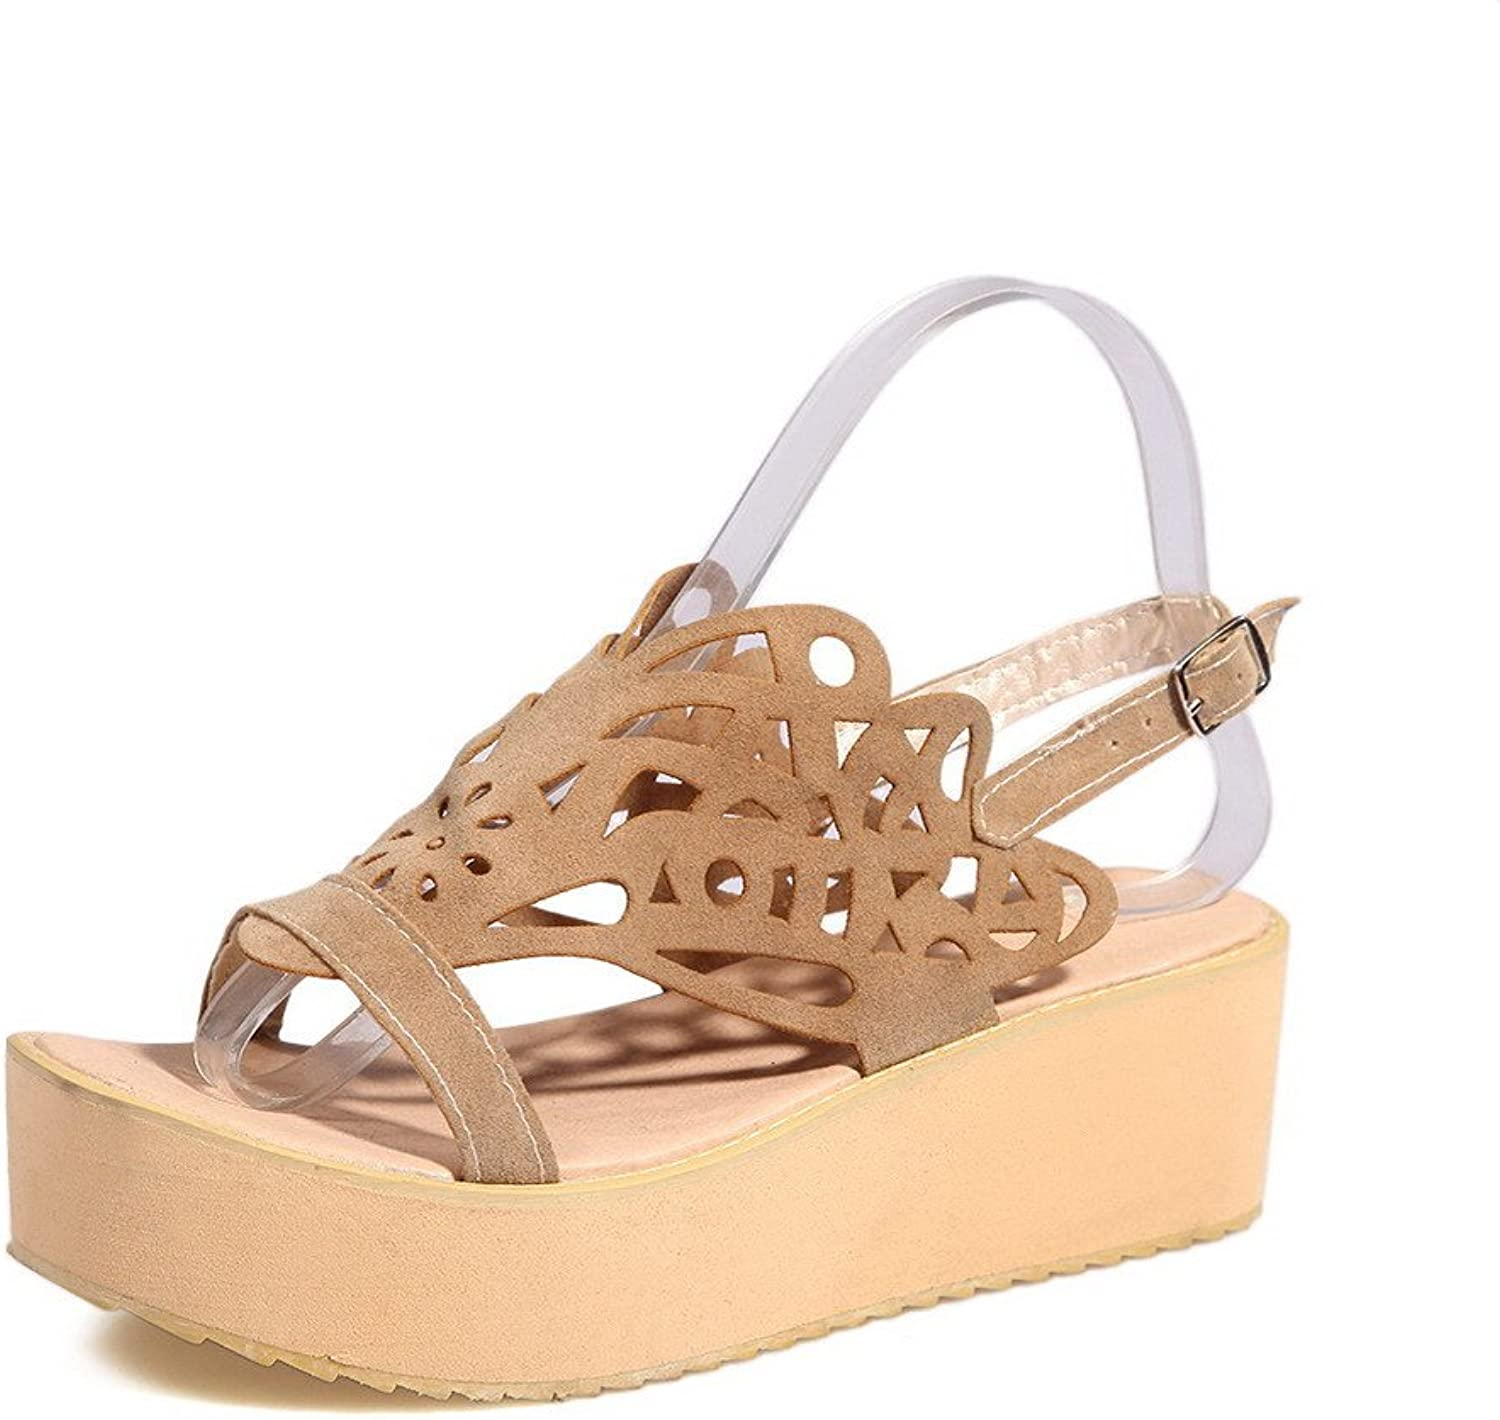 WeenFashion Women's Kitten-Heels Frosted Solid Buckle Open Toe Flats-Sandals